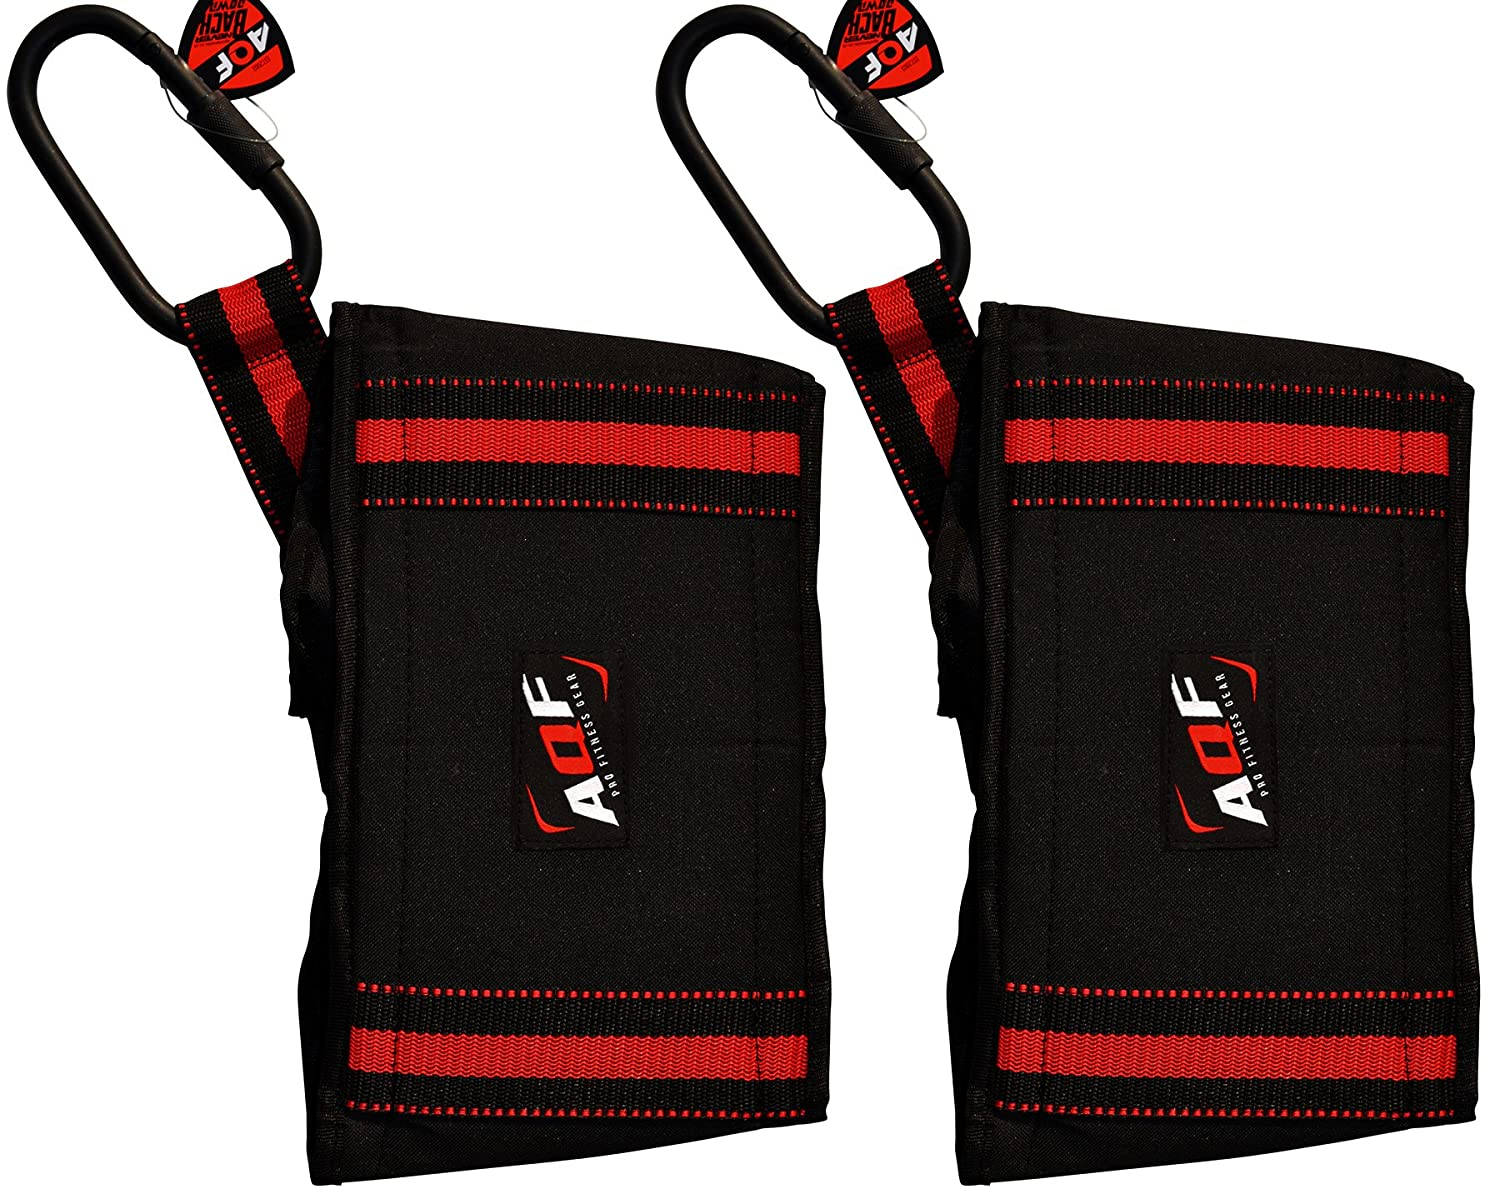 Abdominal straps crunch weight lifting door hanging gym chinning - Aqf Ab Slings Abdominal Straps Crunch Weight Lifting Door Hanging Gym Chinning Amazon Co Uk Sports Outdoors